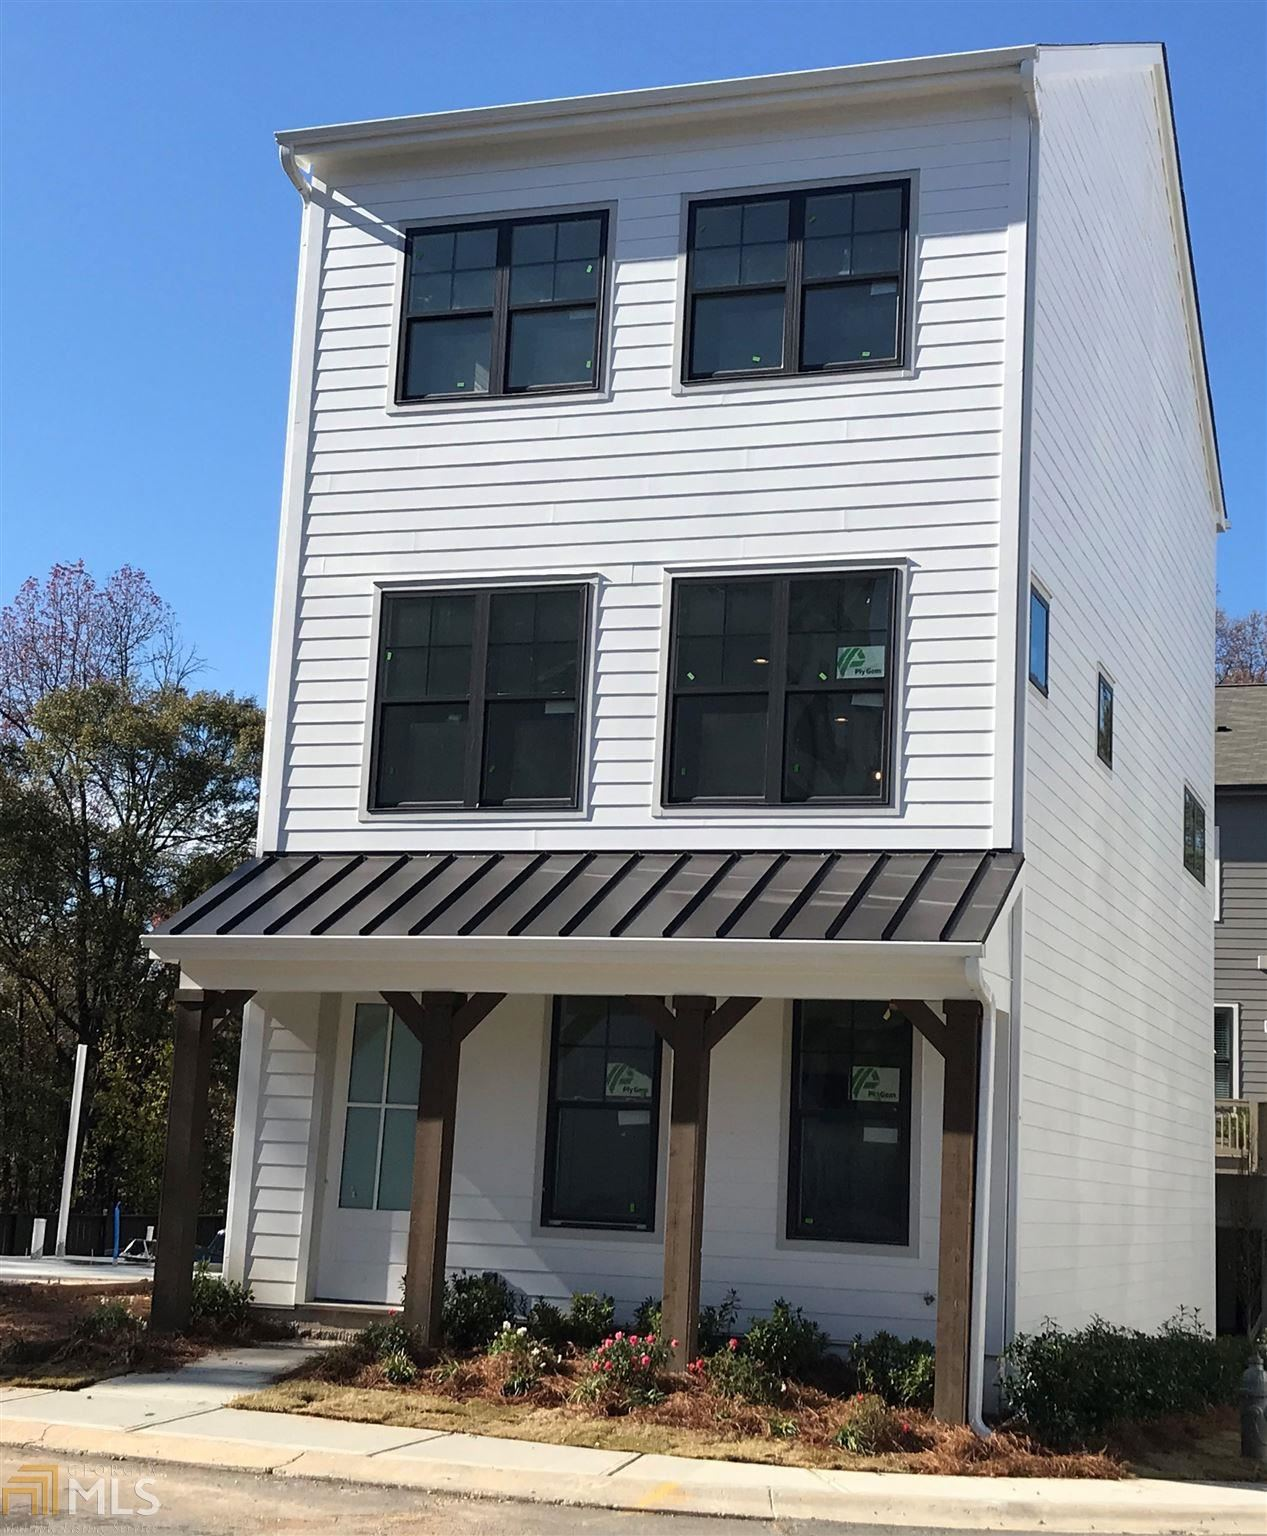 2436 Folly Ln, Atlanta, GA 30339 - MLS#: 8903536